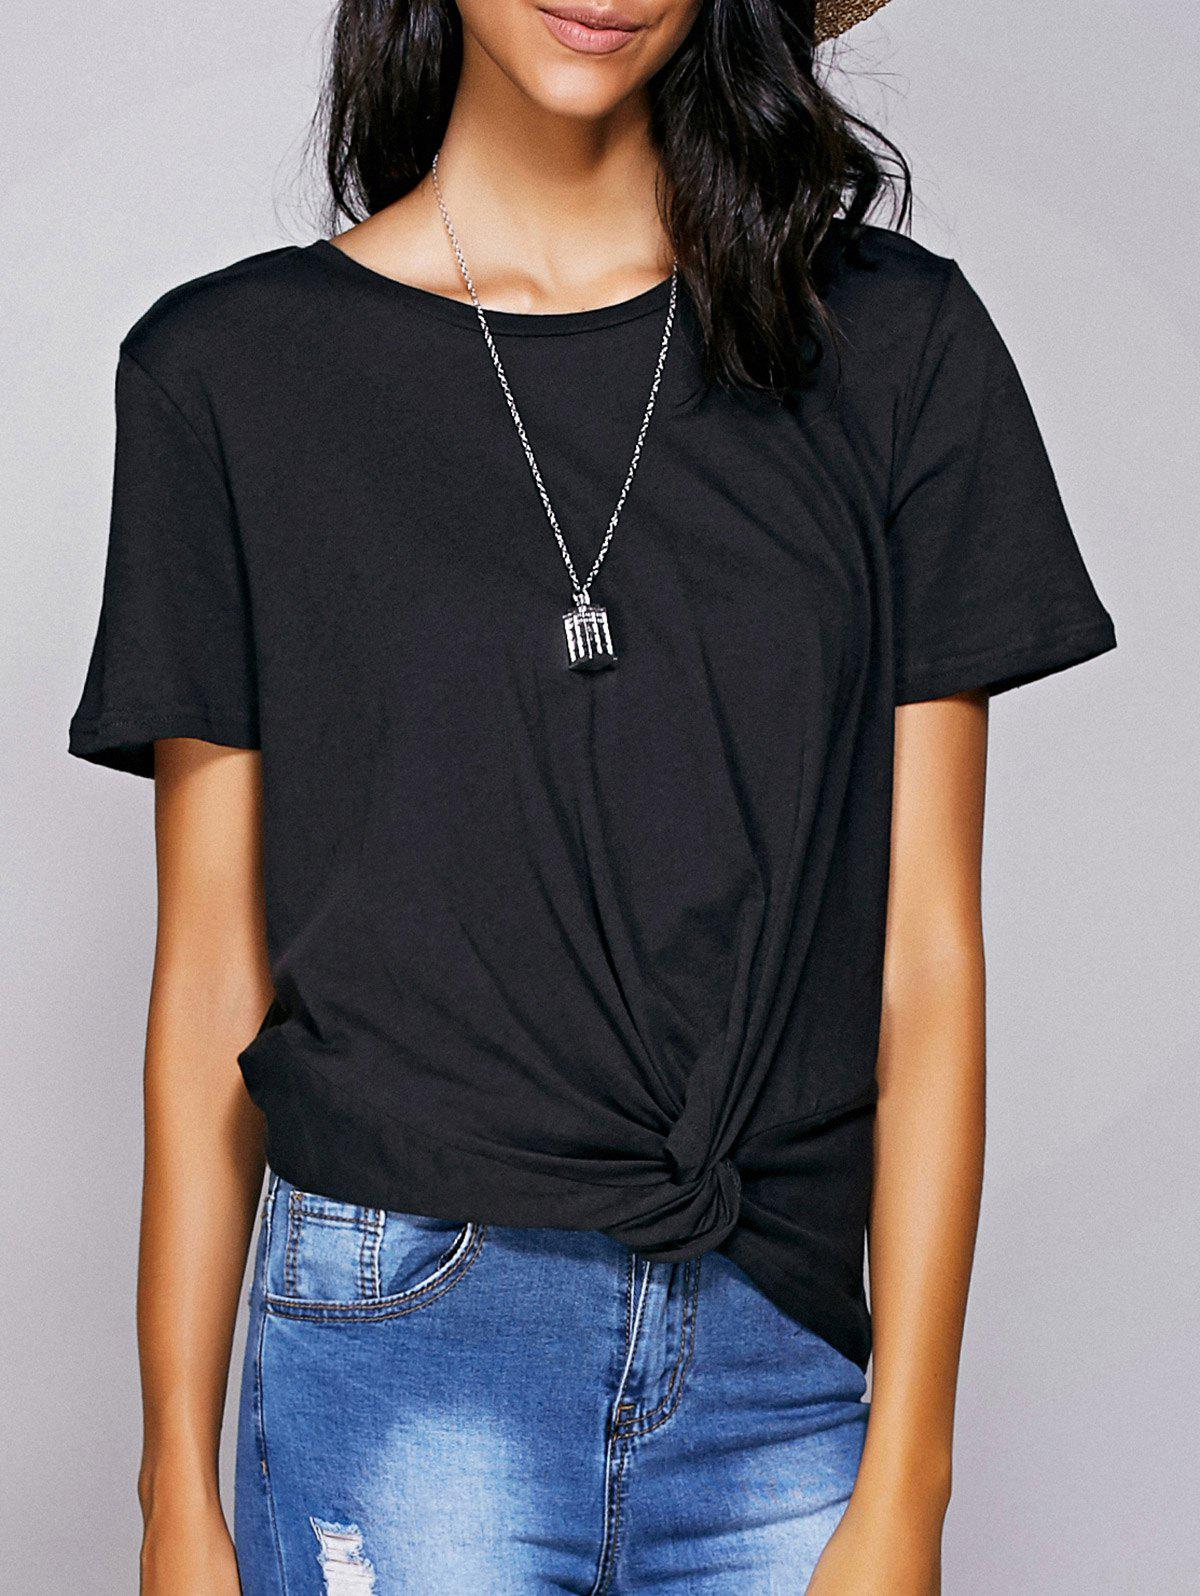 Casual Women's Round Neck Black Knot T-Shirt